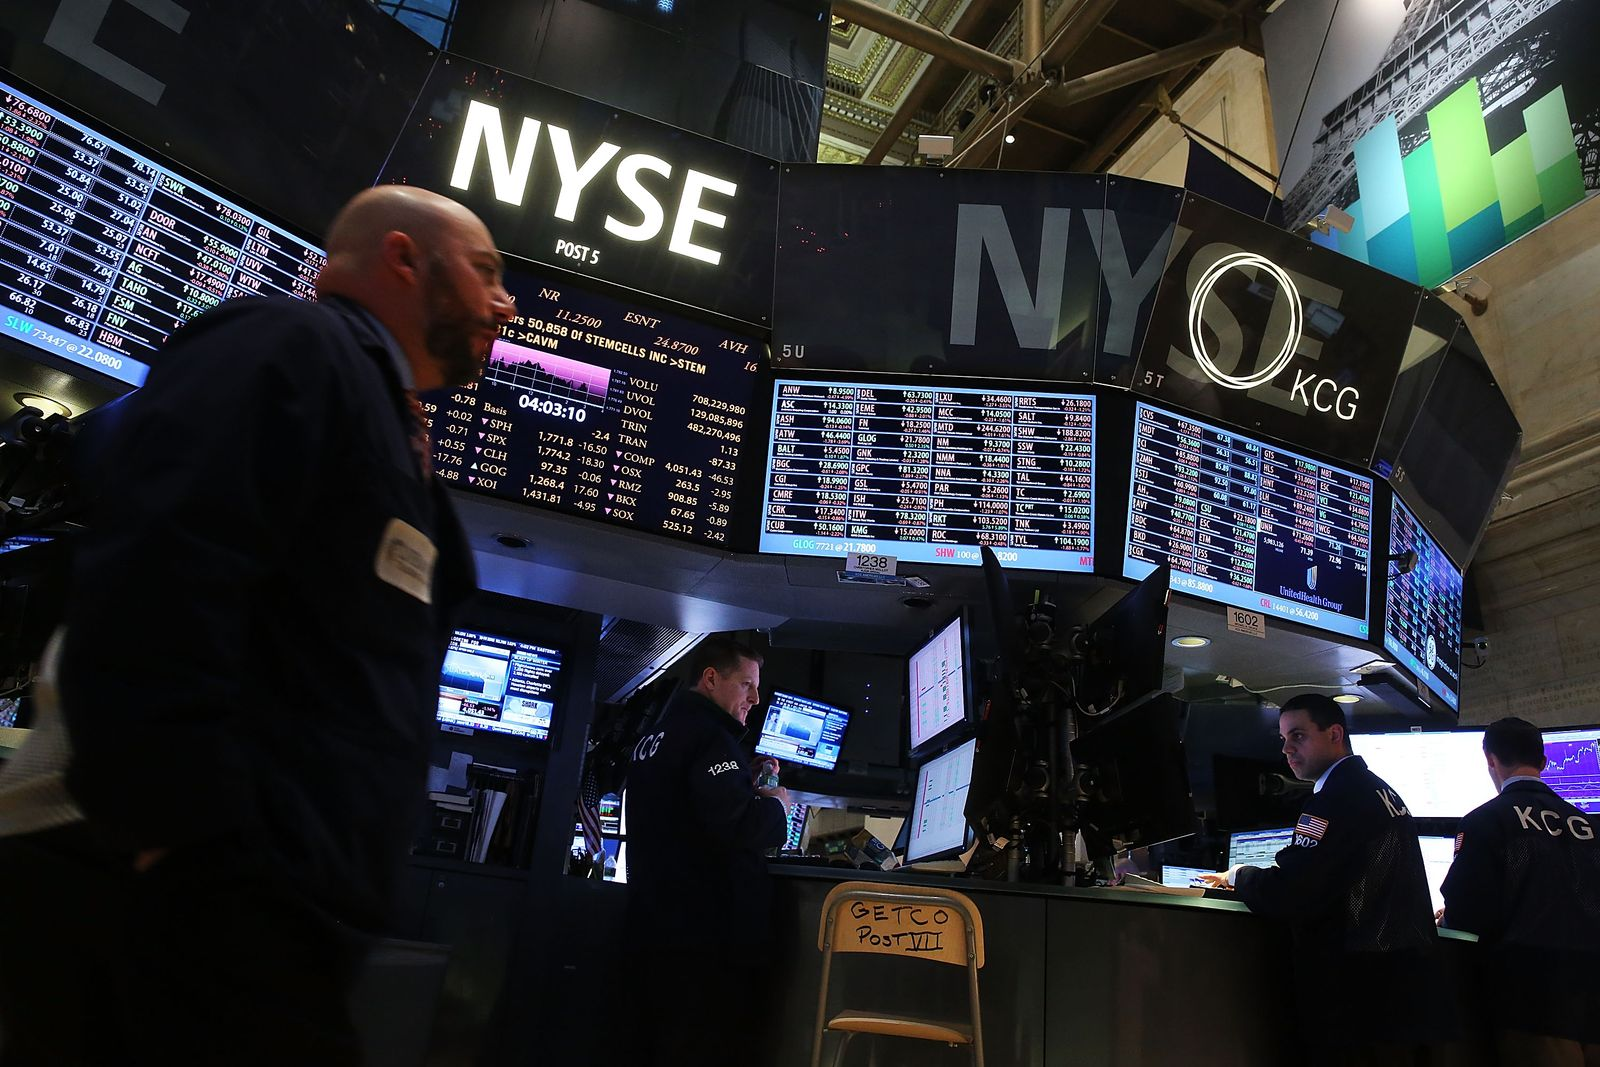 US-MARKETS-REACT-TO-FED-INTEREST-RATE-DECISION